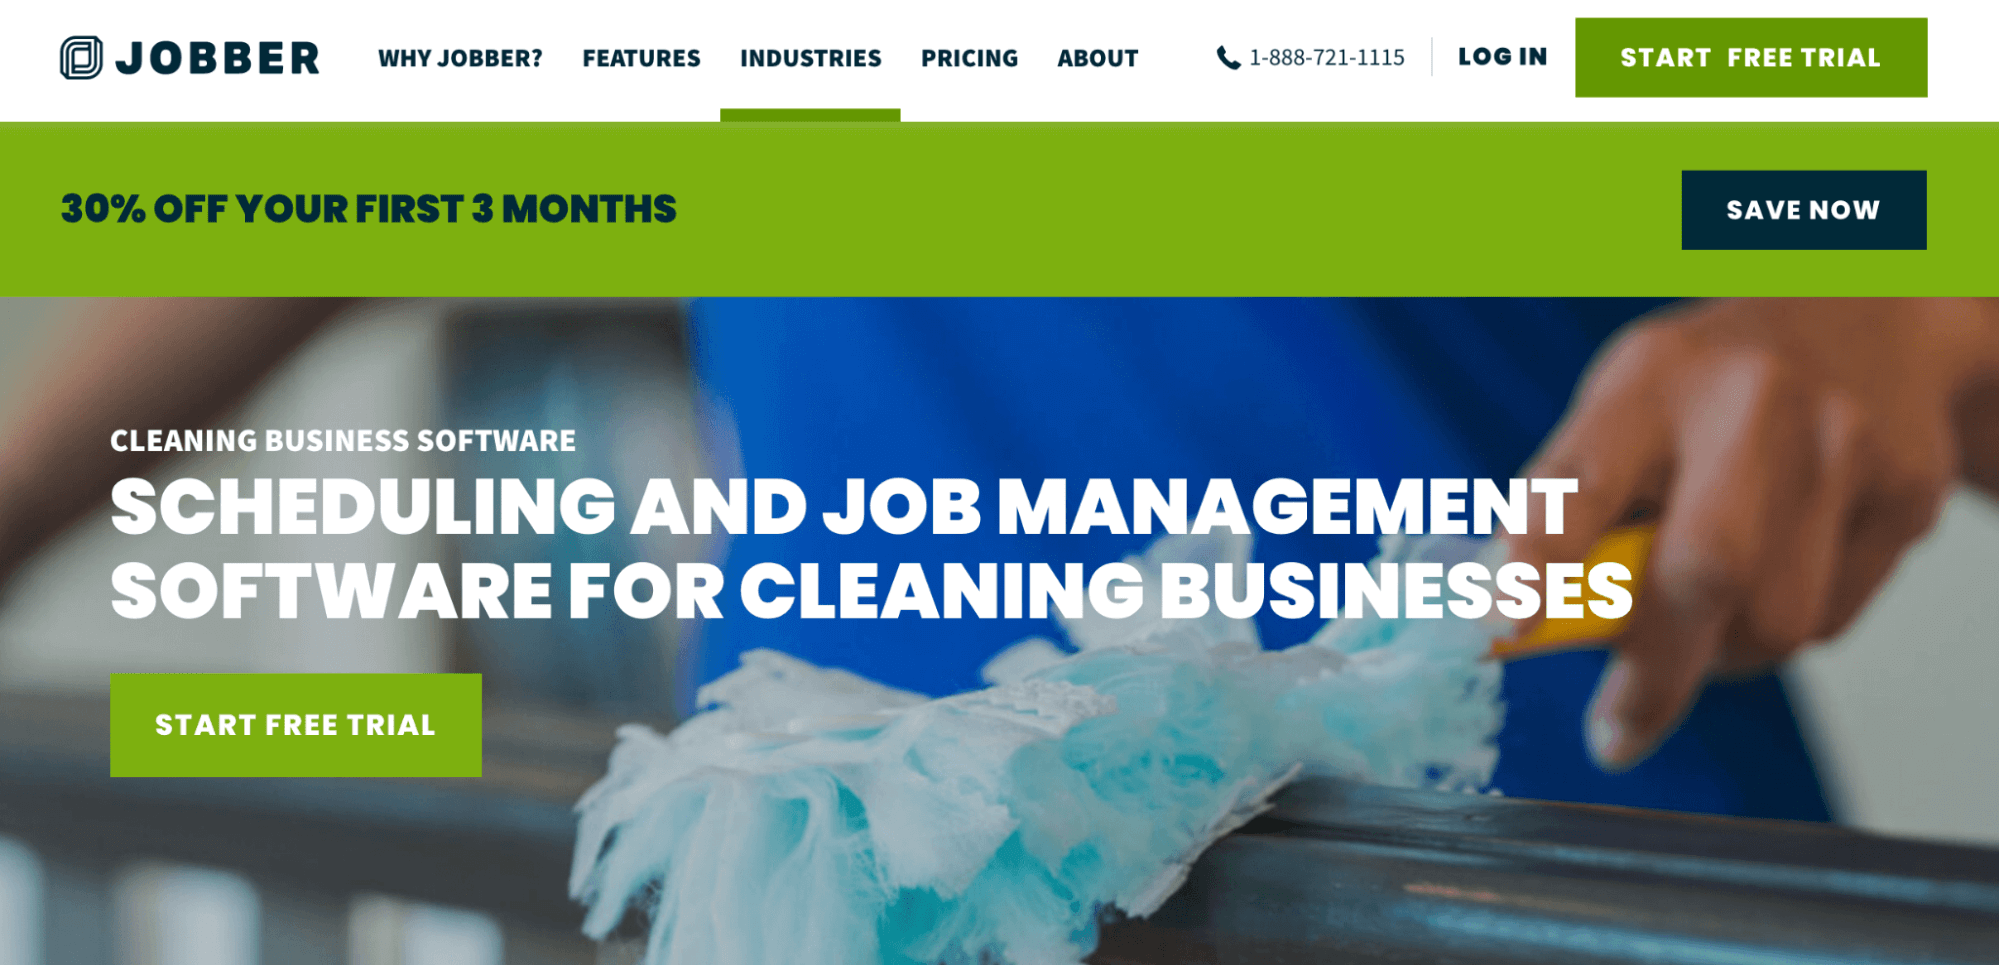 5 Easy Steps to Start a Cleaning Business